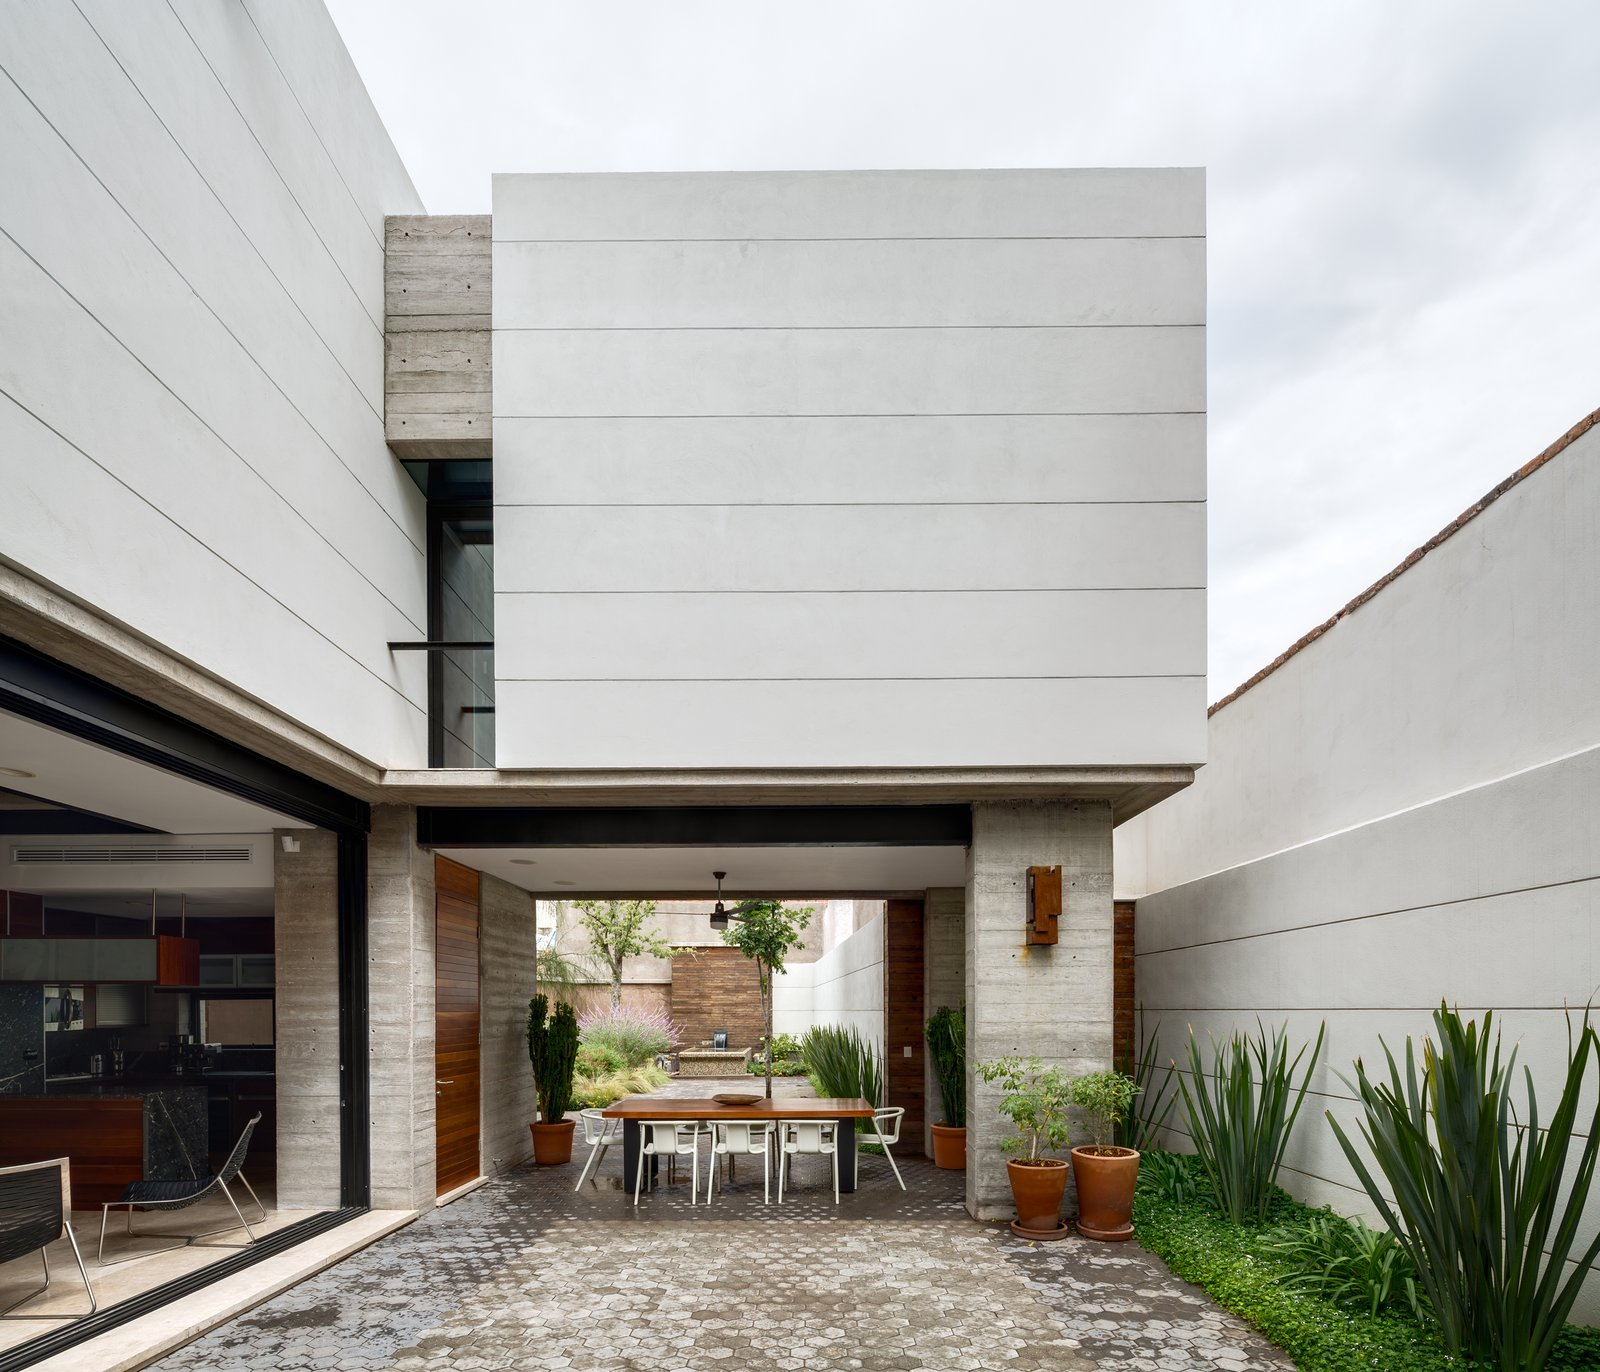 The open and airy courtyard and dining area encourages outdoor living. A custom table made from Andiroba wood and Magis White Air armchairs complete the space.  Indoor-Outdoor Retreats in Mexico by Allie Weiss from Hybrid Home